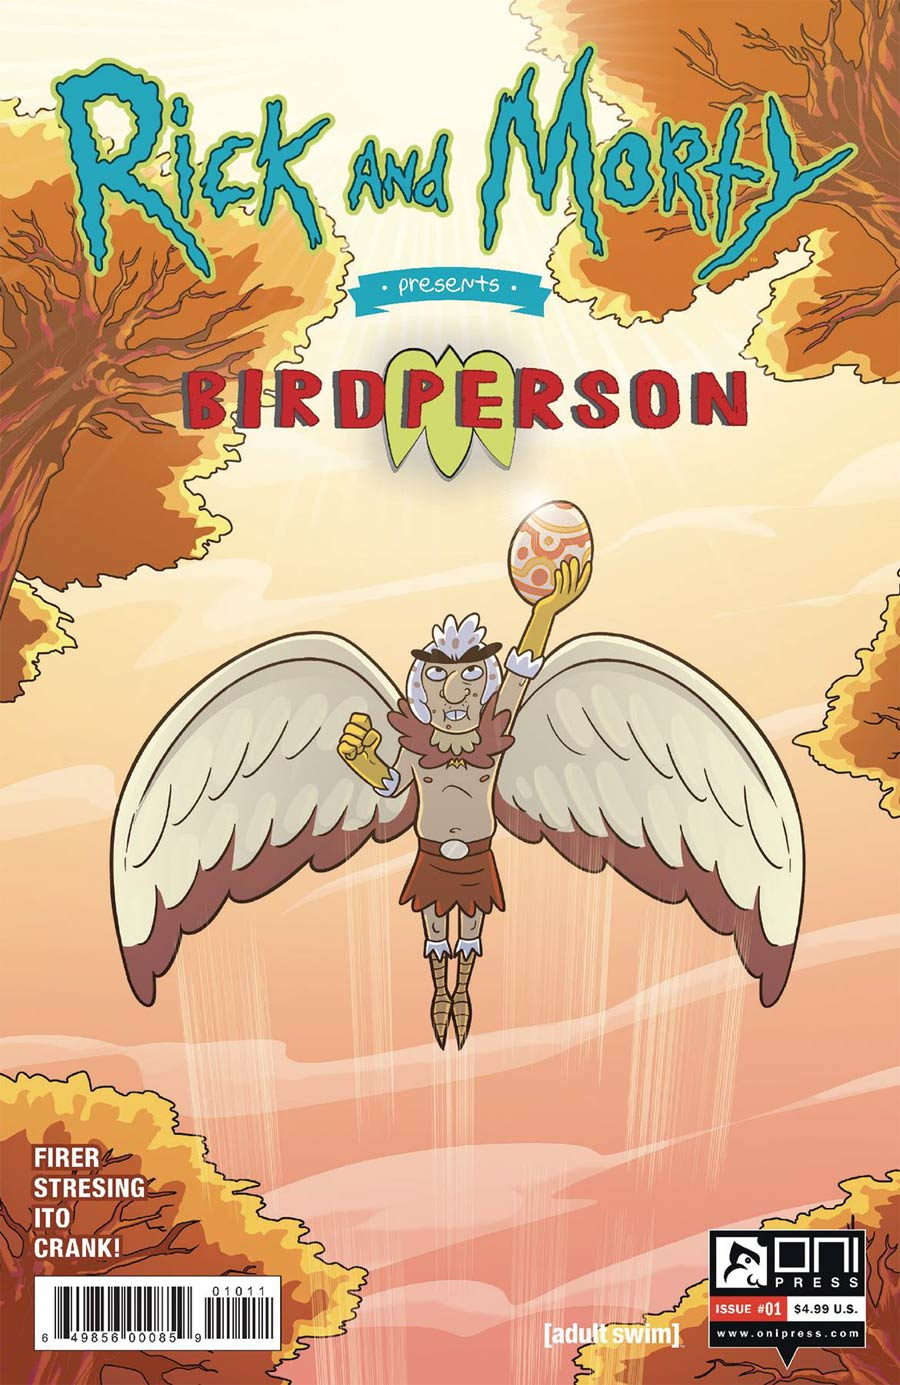 Rick And Morty Presents Birdperson #1 Cover A Regular Fred C Stresing Cover